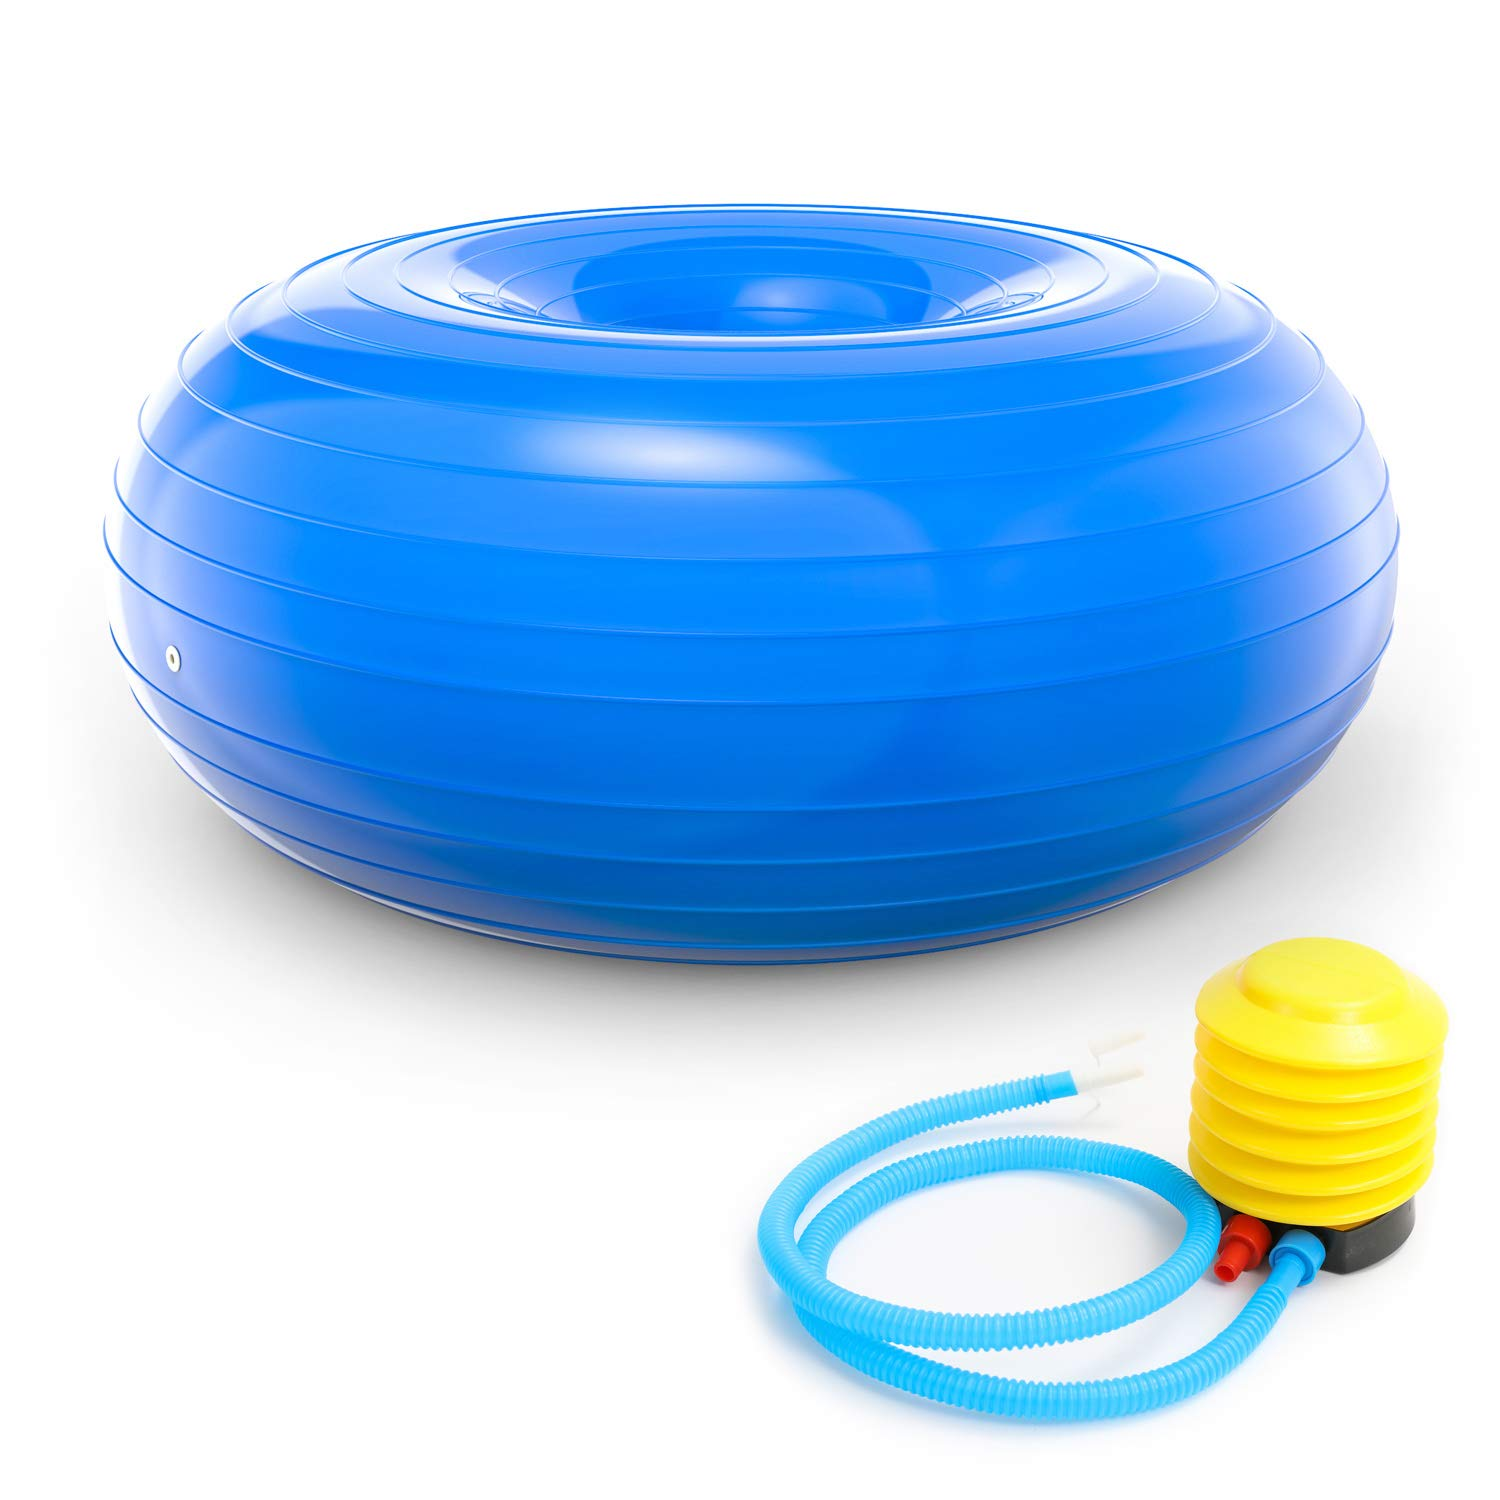 TECHMOO Donut Ball with Foot Pump Core Training Flexible Inflatable Donut Chiar for Classroom Furniture Balance Stability Balls for Yoga Pilates Gym Indoor Balance Training